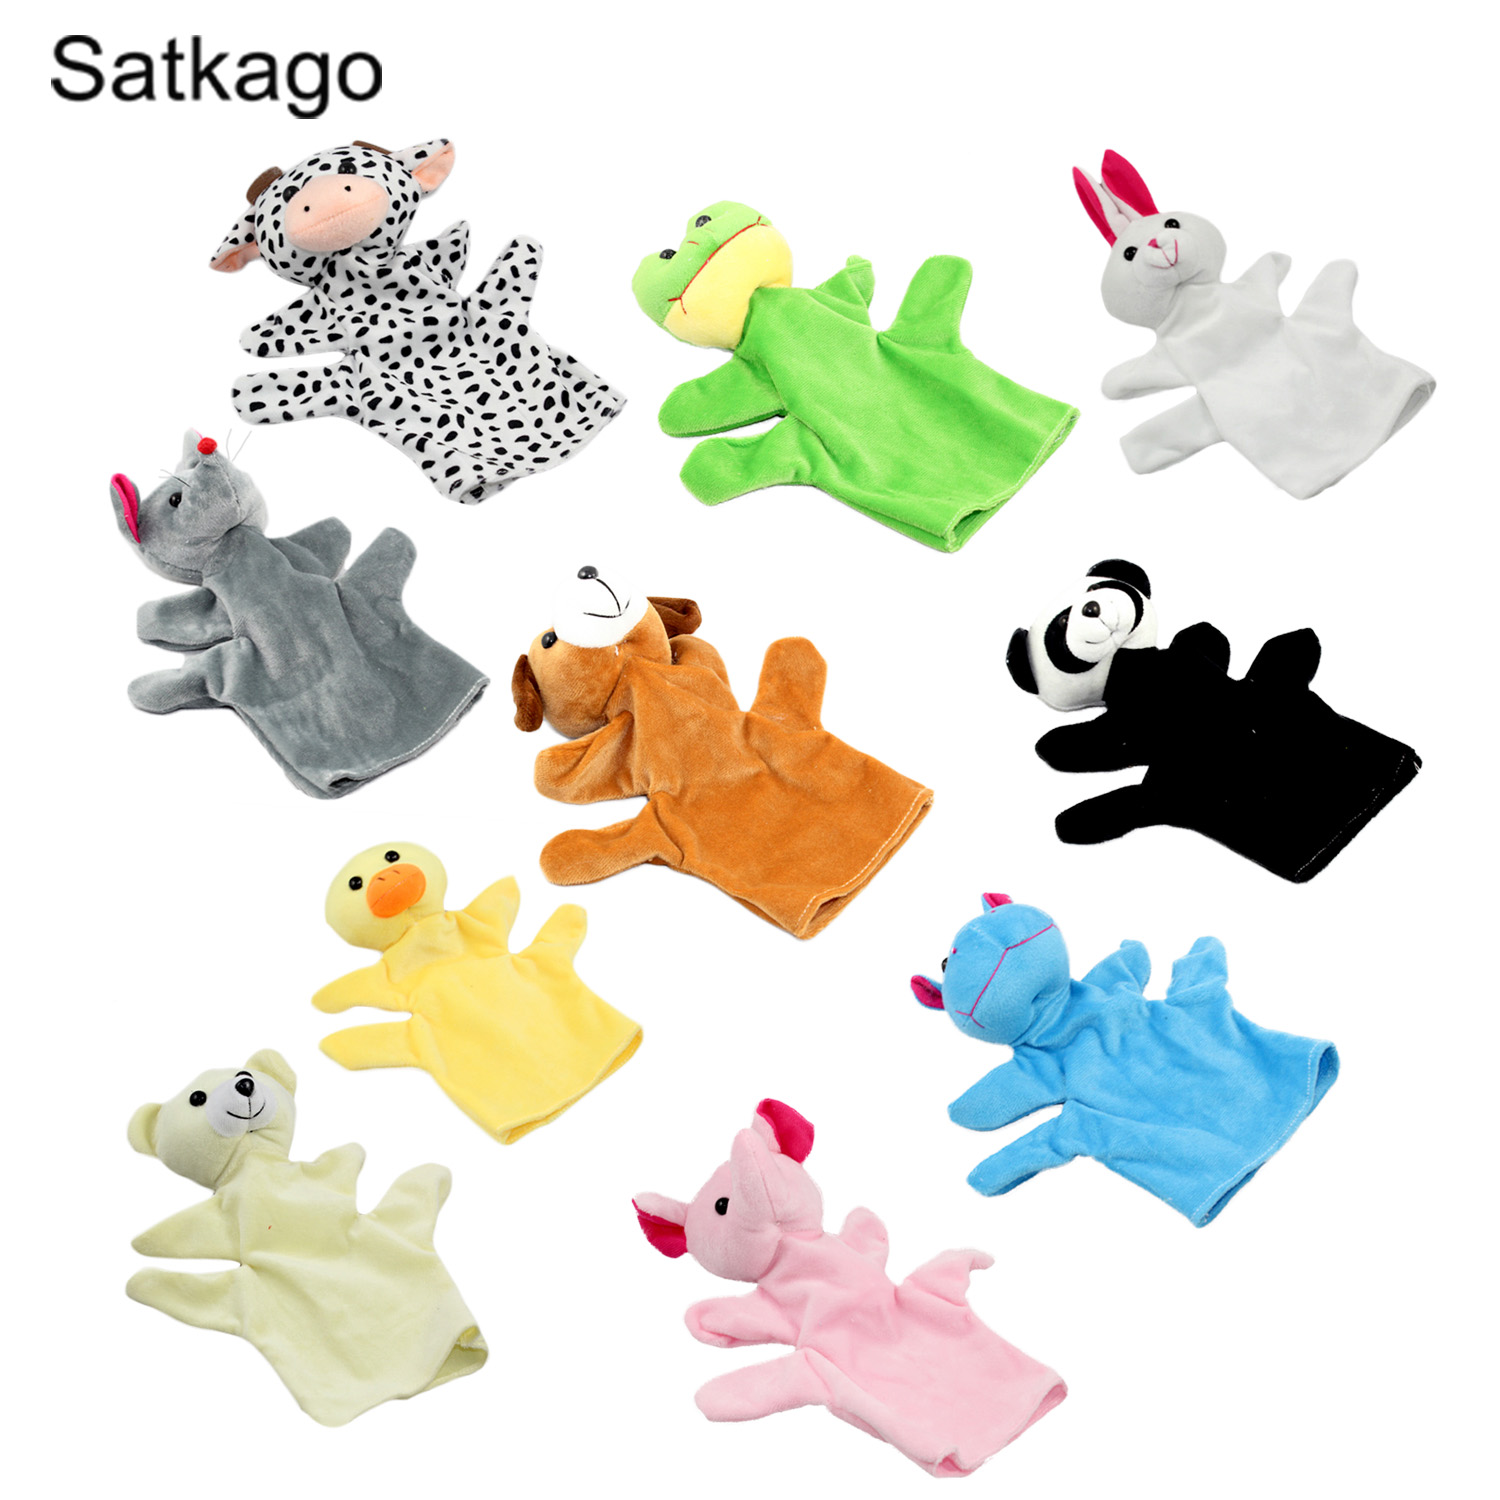 Satkago 10 PCS Assorted Animal Styles Kids Hand Puppets Doll Toys for Imaginative Play Puppet Show Parent-child Interaction